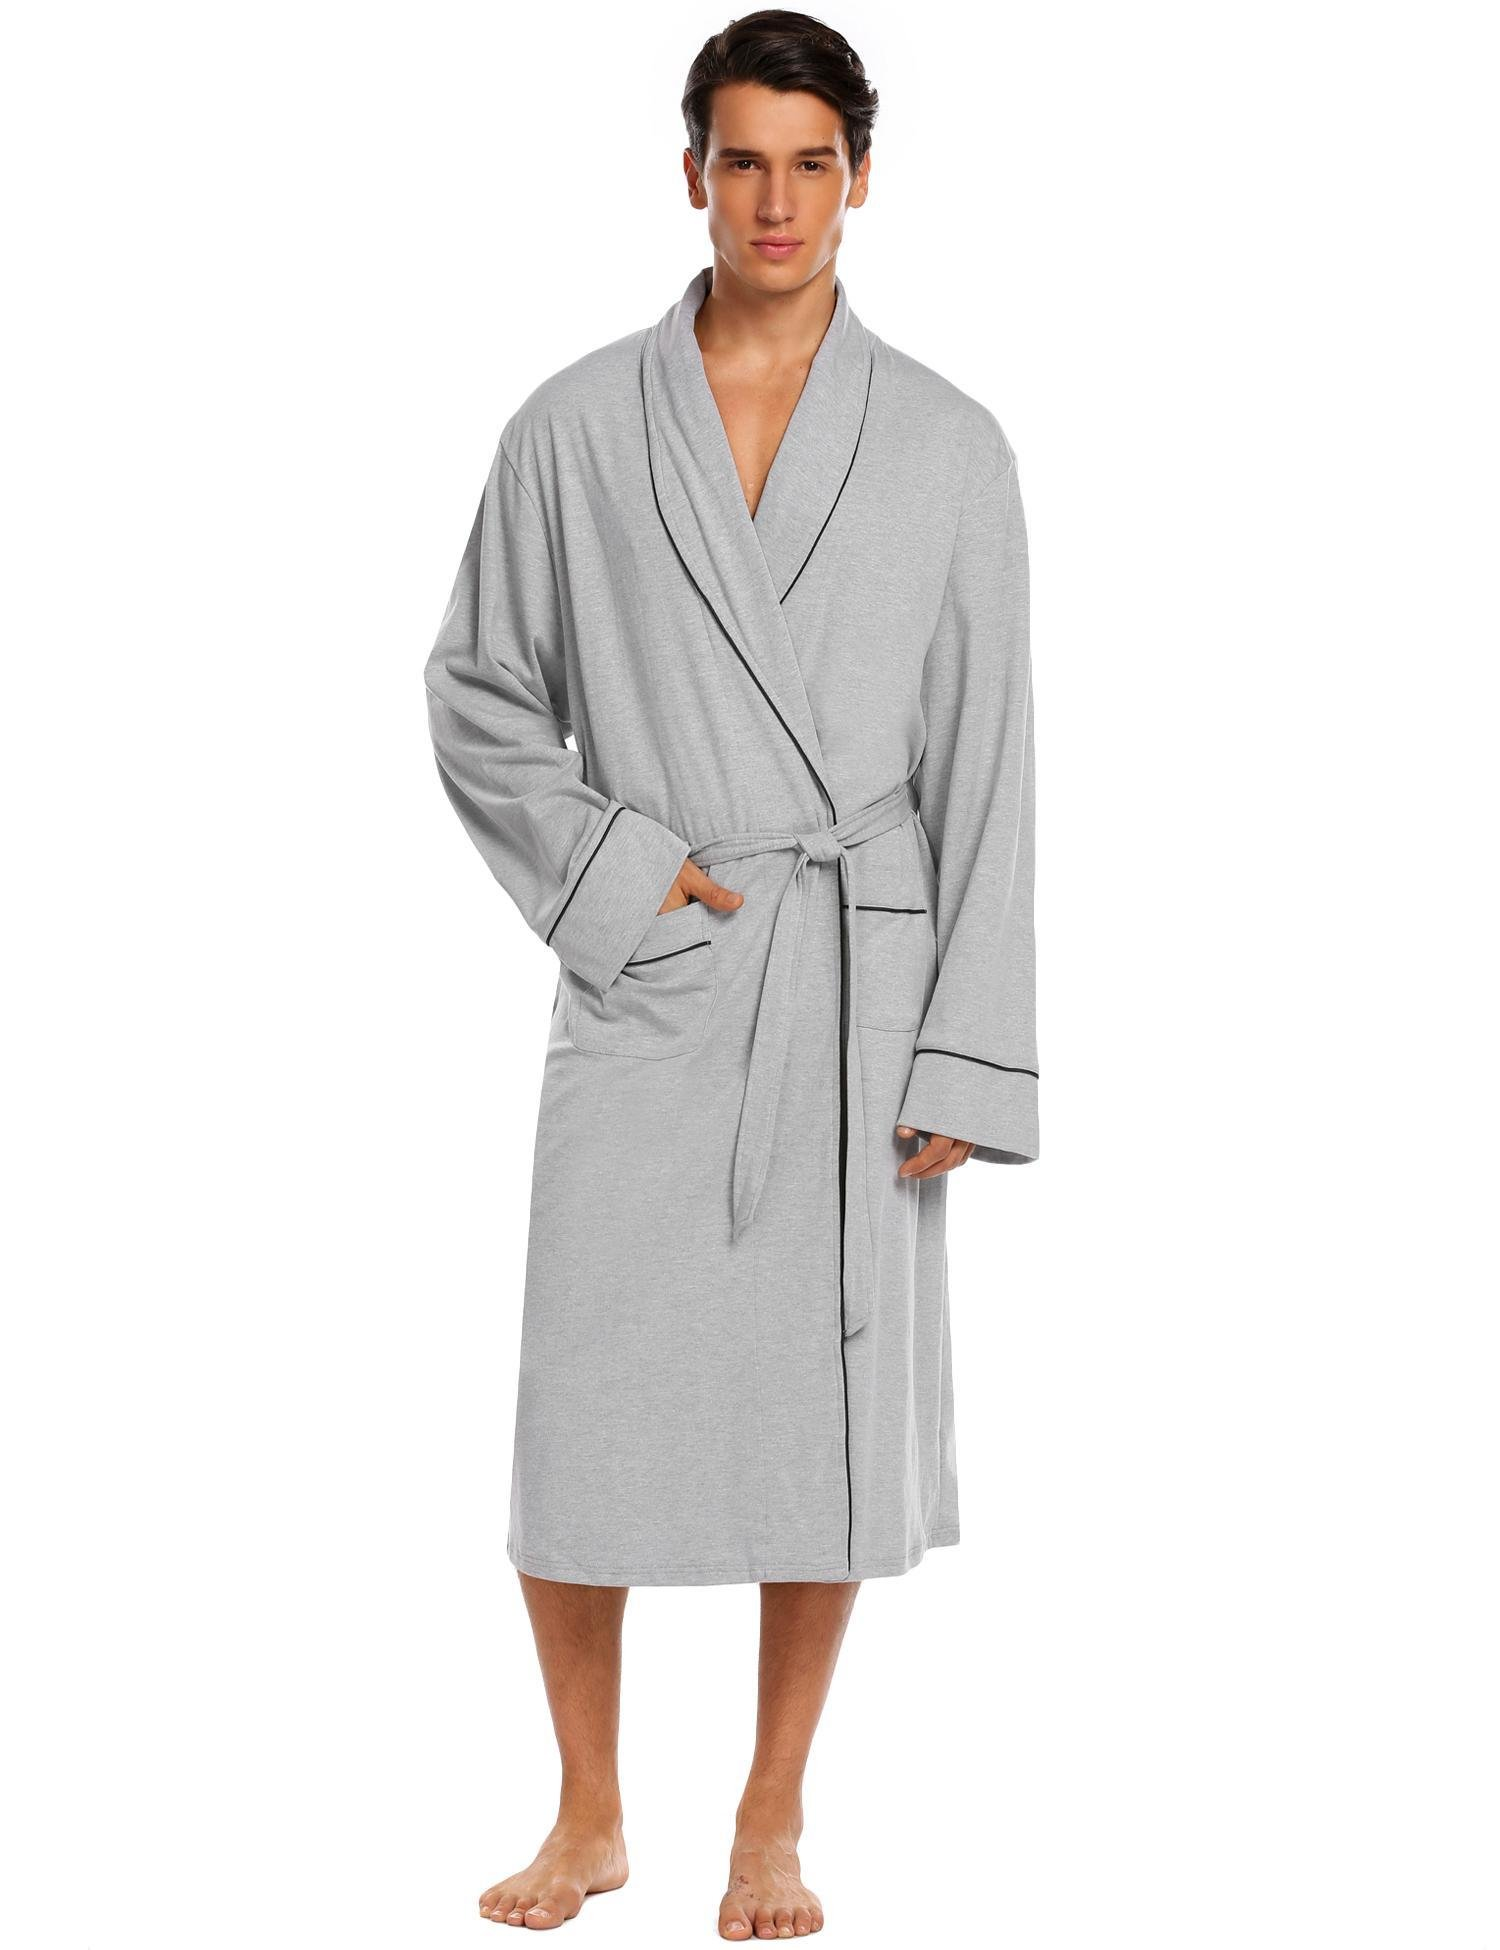 Donet Bathrobe Mens Cotton Spa Robes Lightweight Bath Robe Lounge Sleepwear